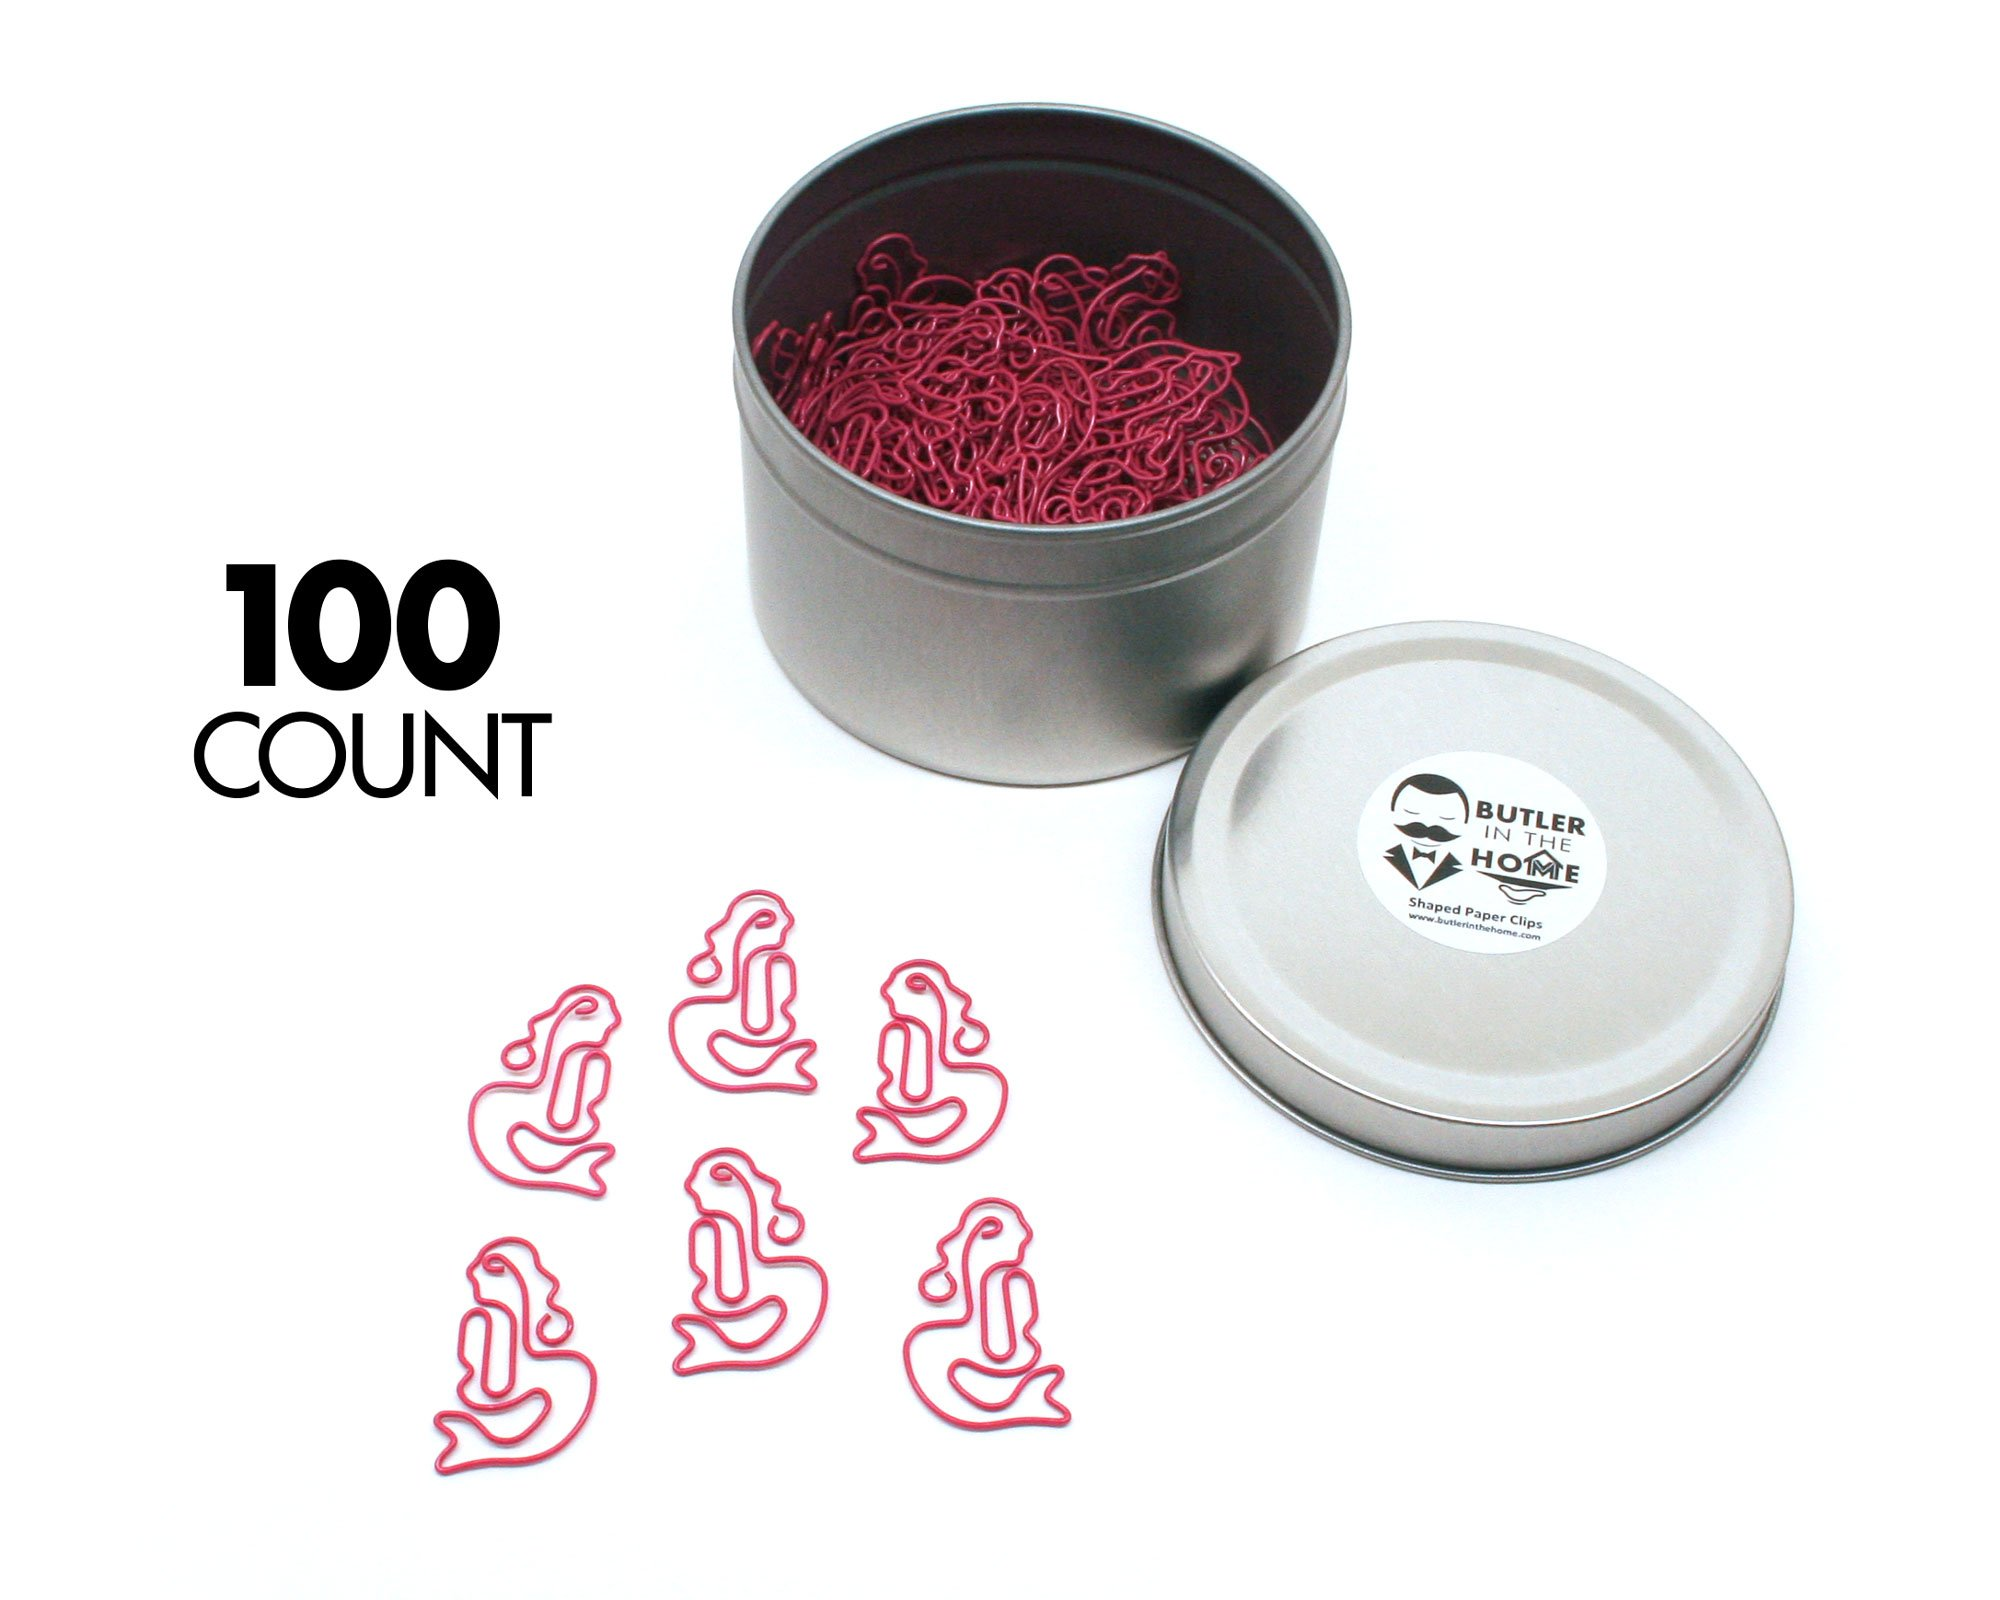 Butler in the Home Mermaid Shaped Paper Clips Great For Paper Clip Collectors or Office Gift - Comes in Round Tin with Lid and Gift Box (100 Count Pink)